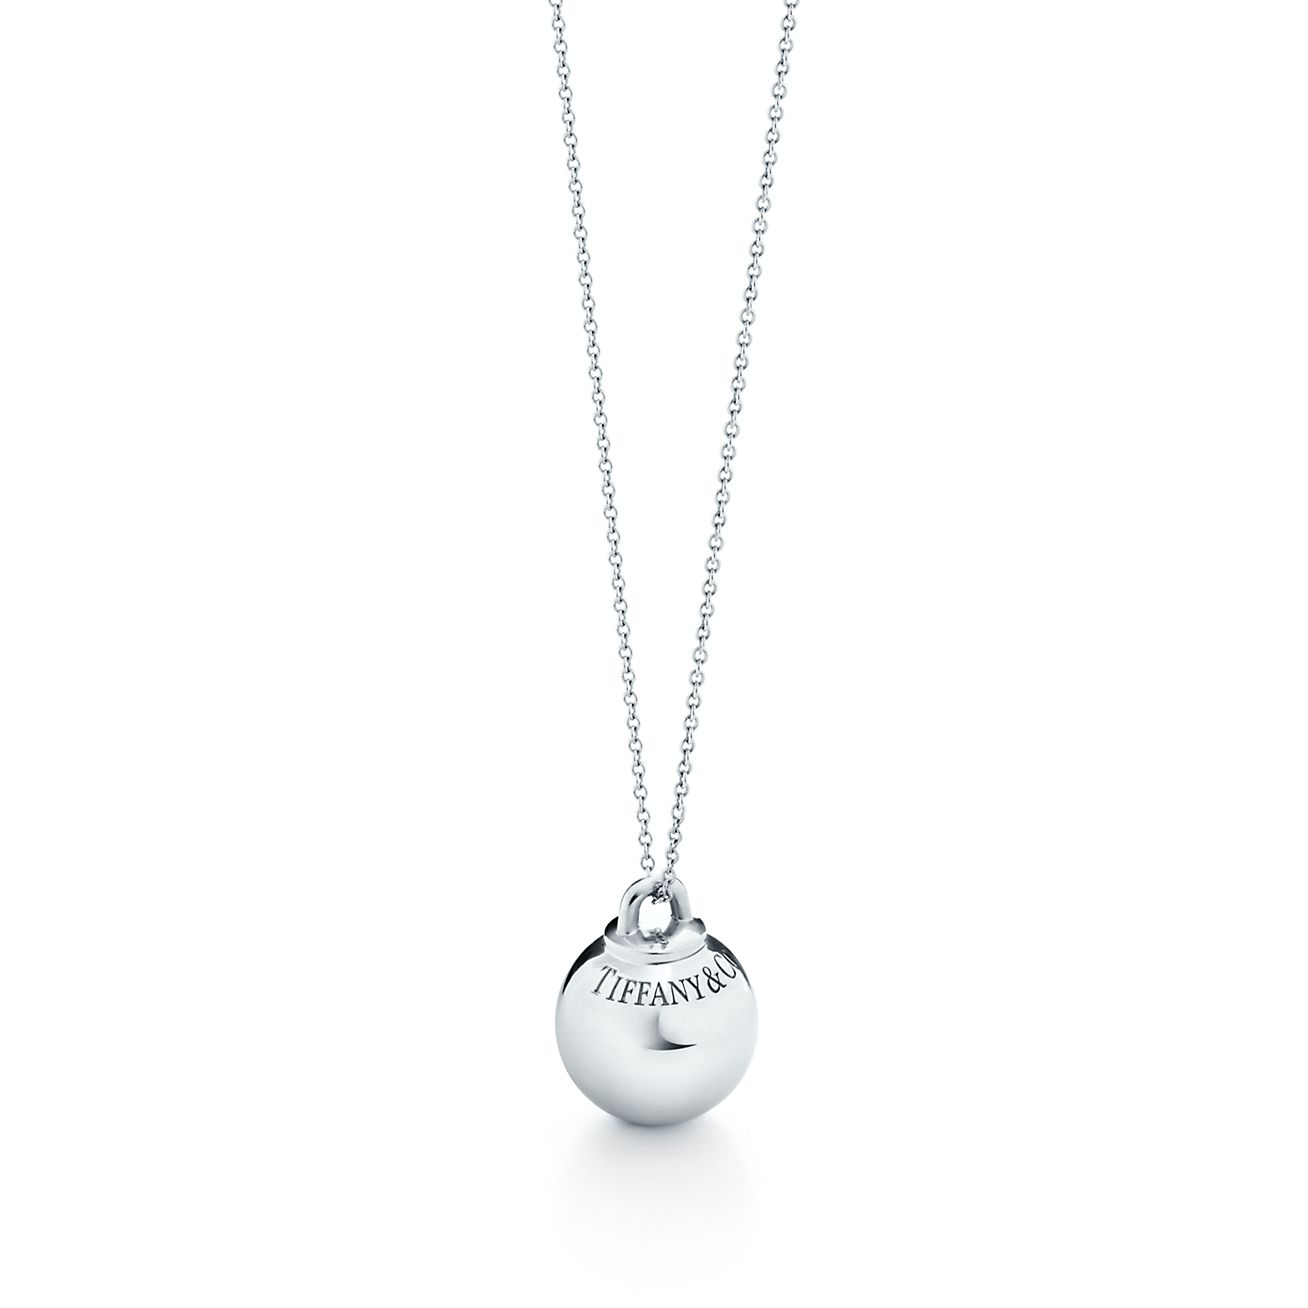 Tiffany hardwear ball pendant in sterling silver tiffany co tiffany hardwearball pendant aloadofball Image collections